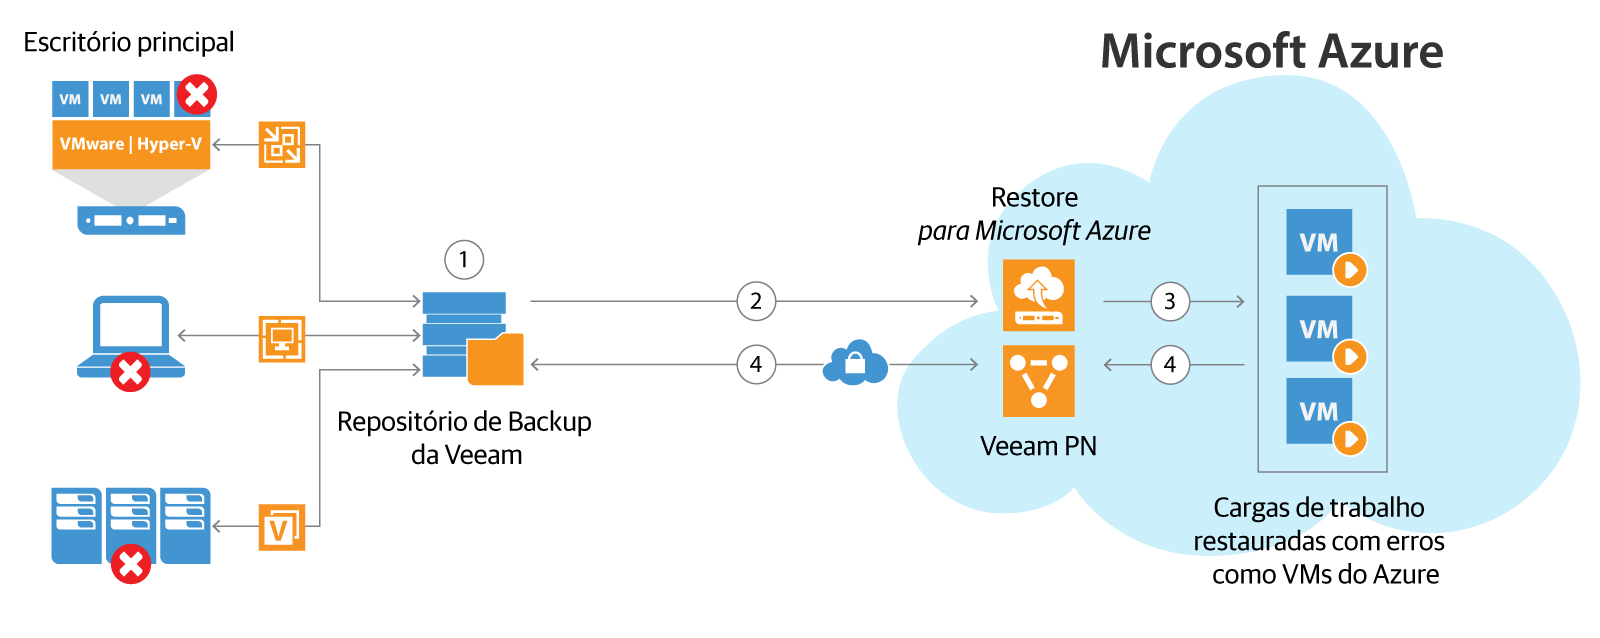 veeam_pn_direct_restore_to_azure_br.png